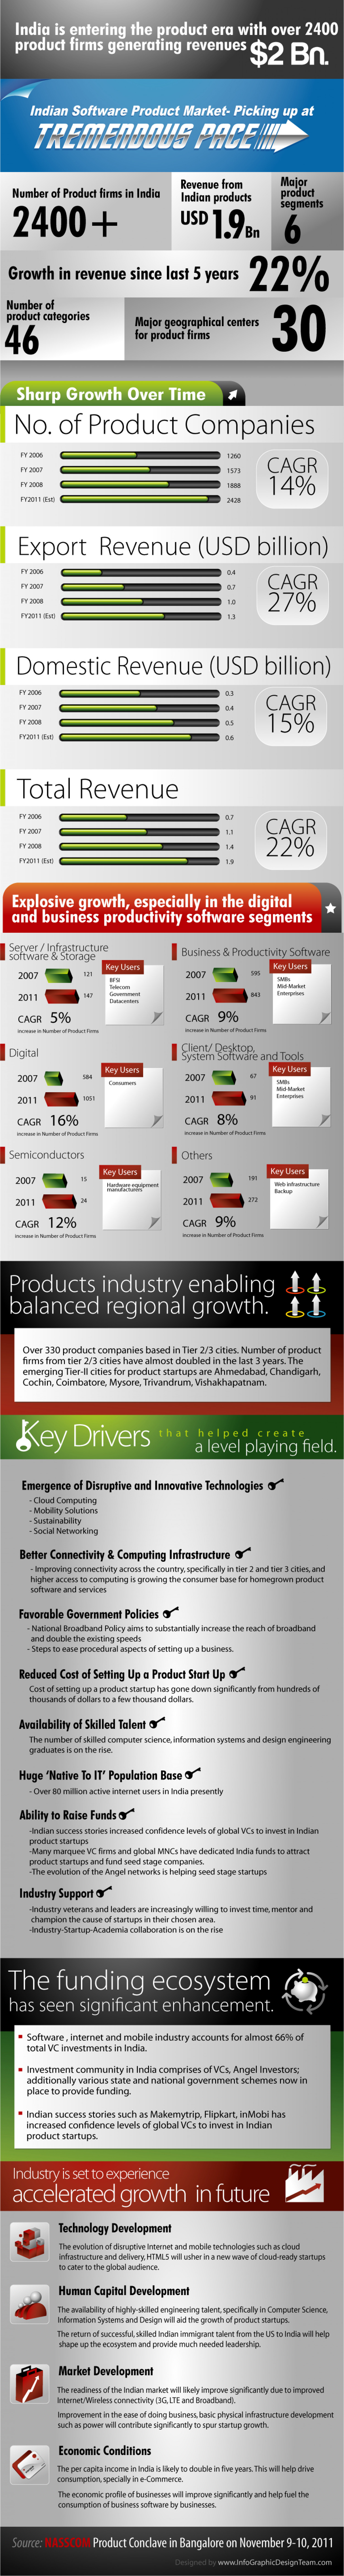 India is entering the Software Product Era with more than 2400 Product Firms. Infographic